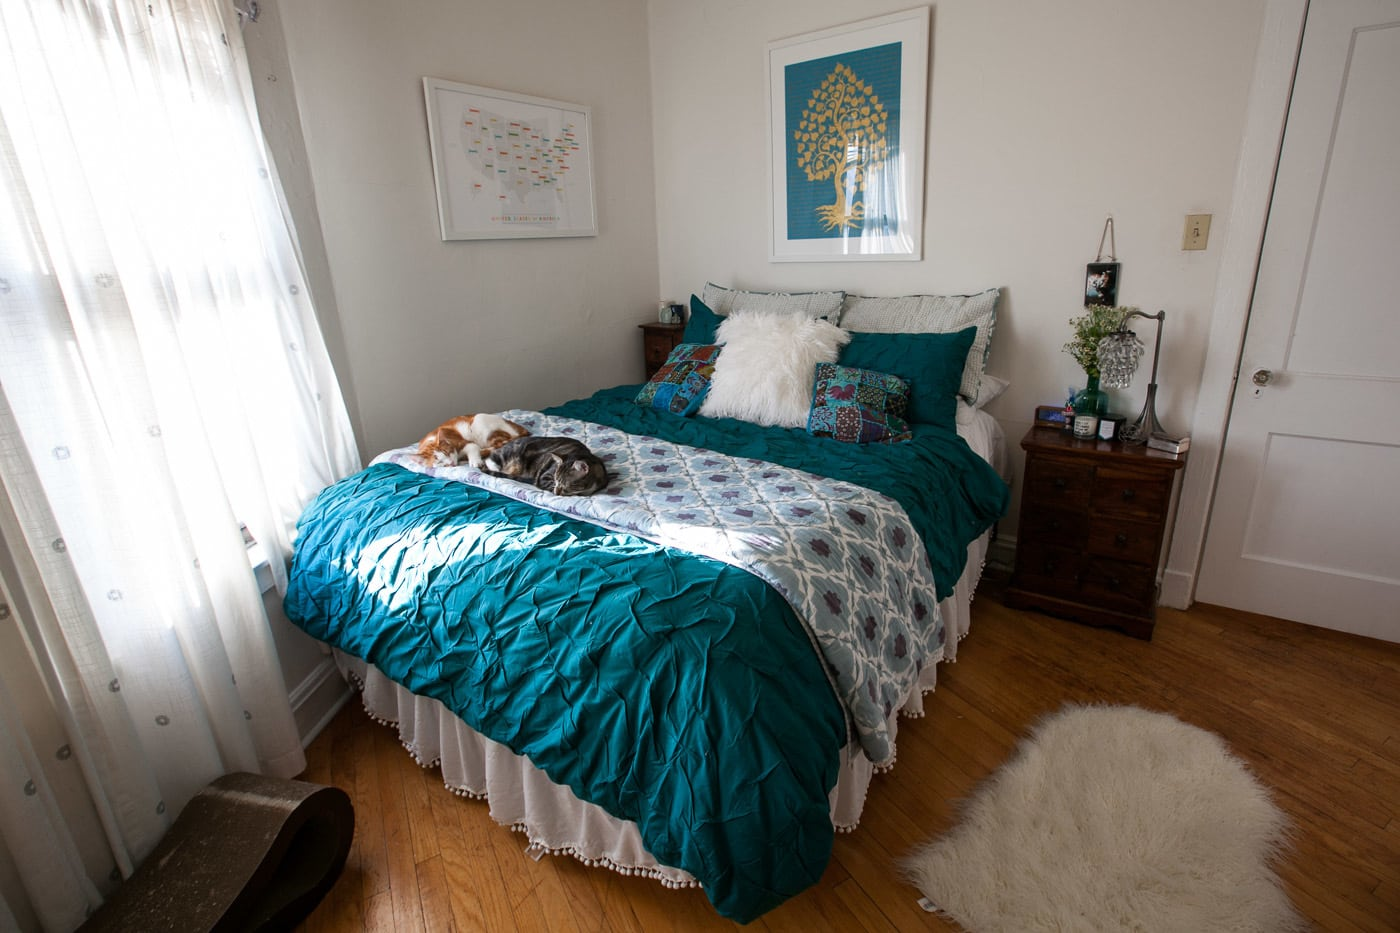 My new bedding: Melyssa teal duvet cover from CB2. Plus cats. Obviously.